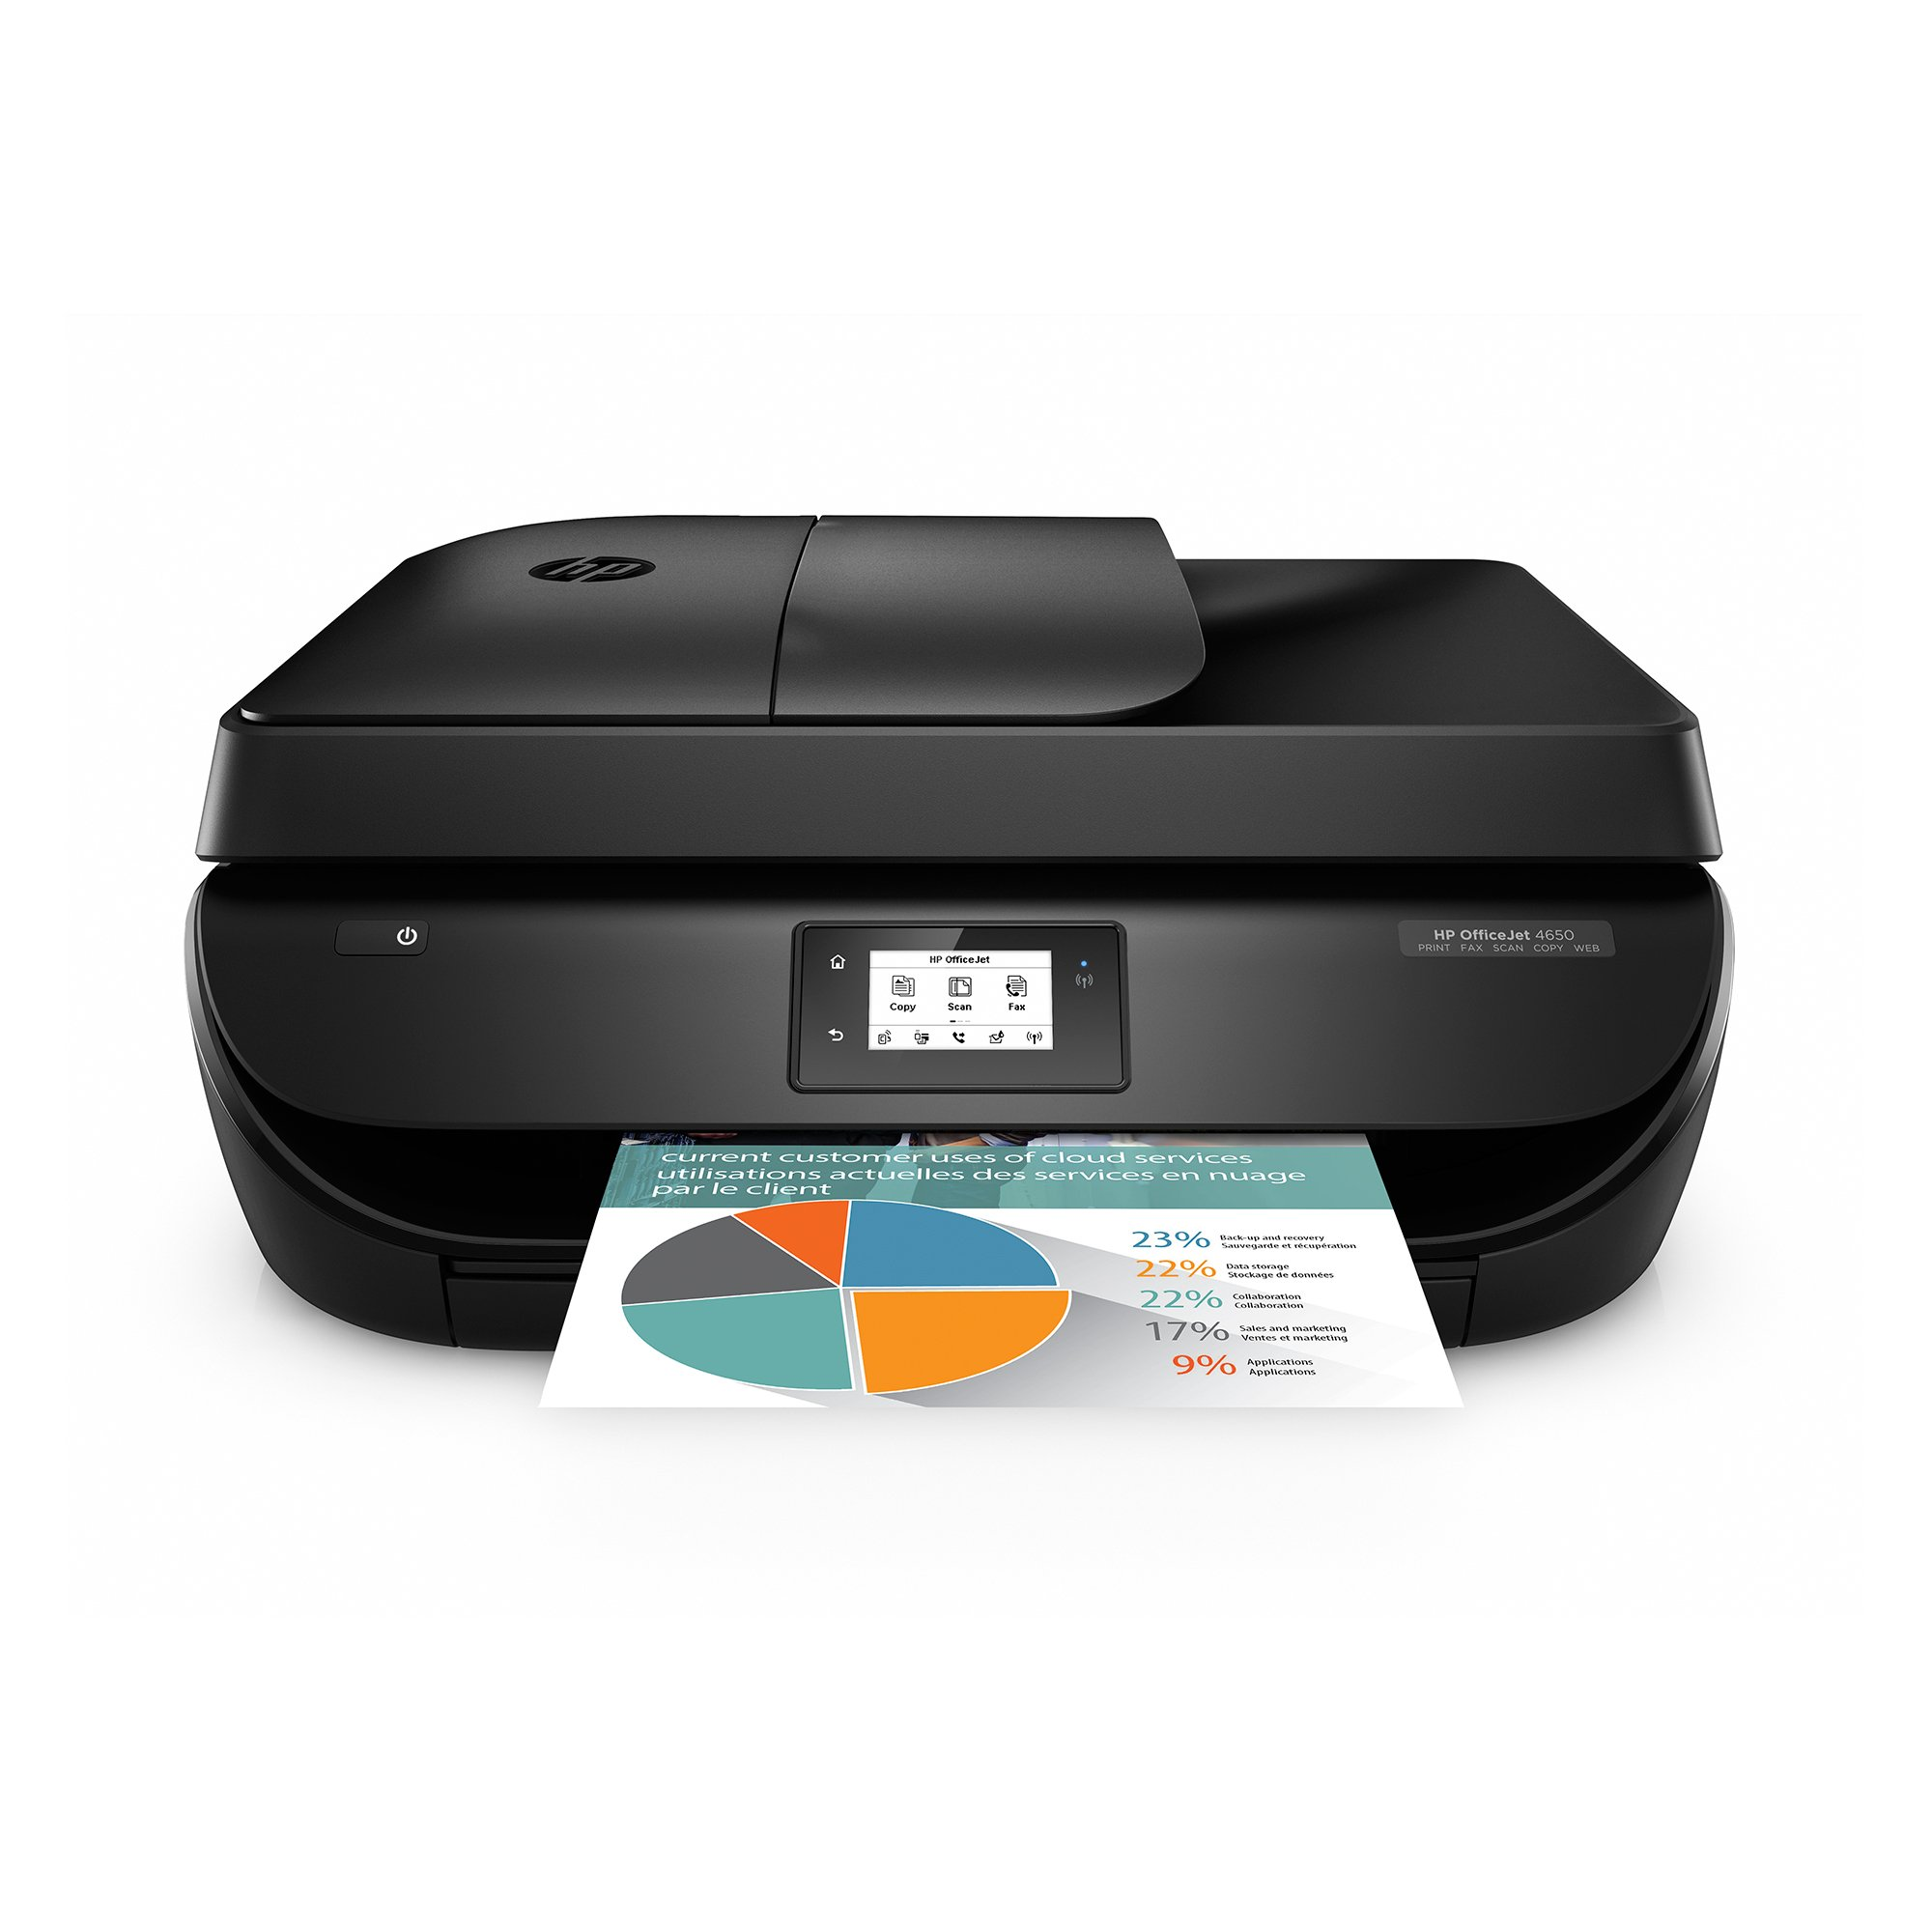 HP OfficeJet 4650 Wireless All-in-One Photo Printer with Mobile Printing (Certified Refurbished) by HP